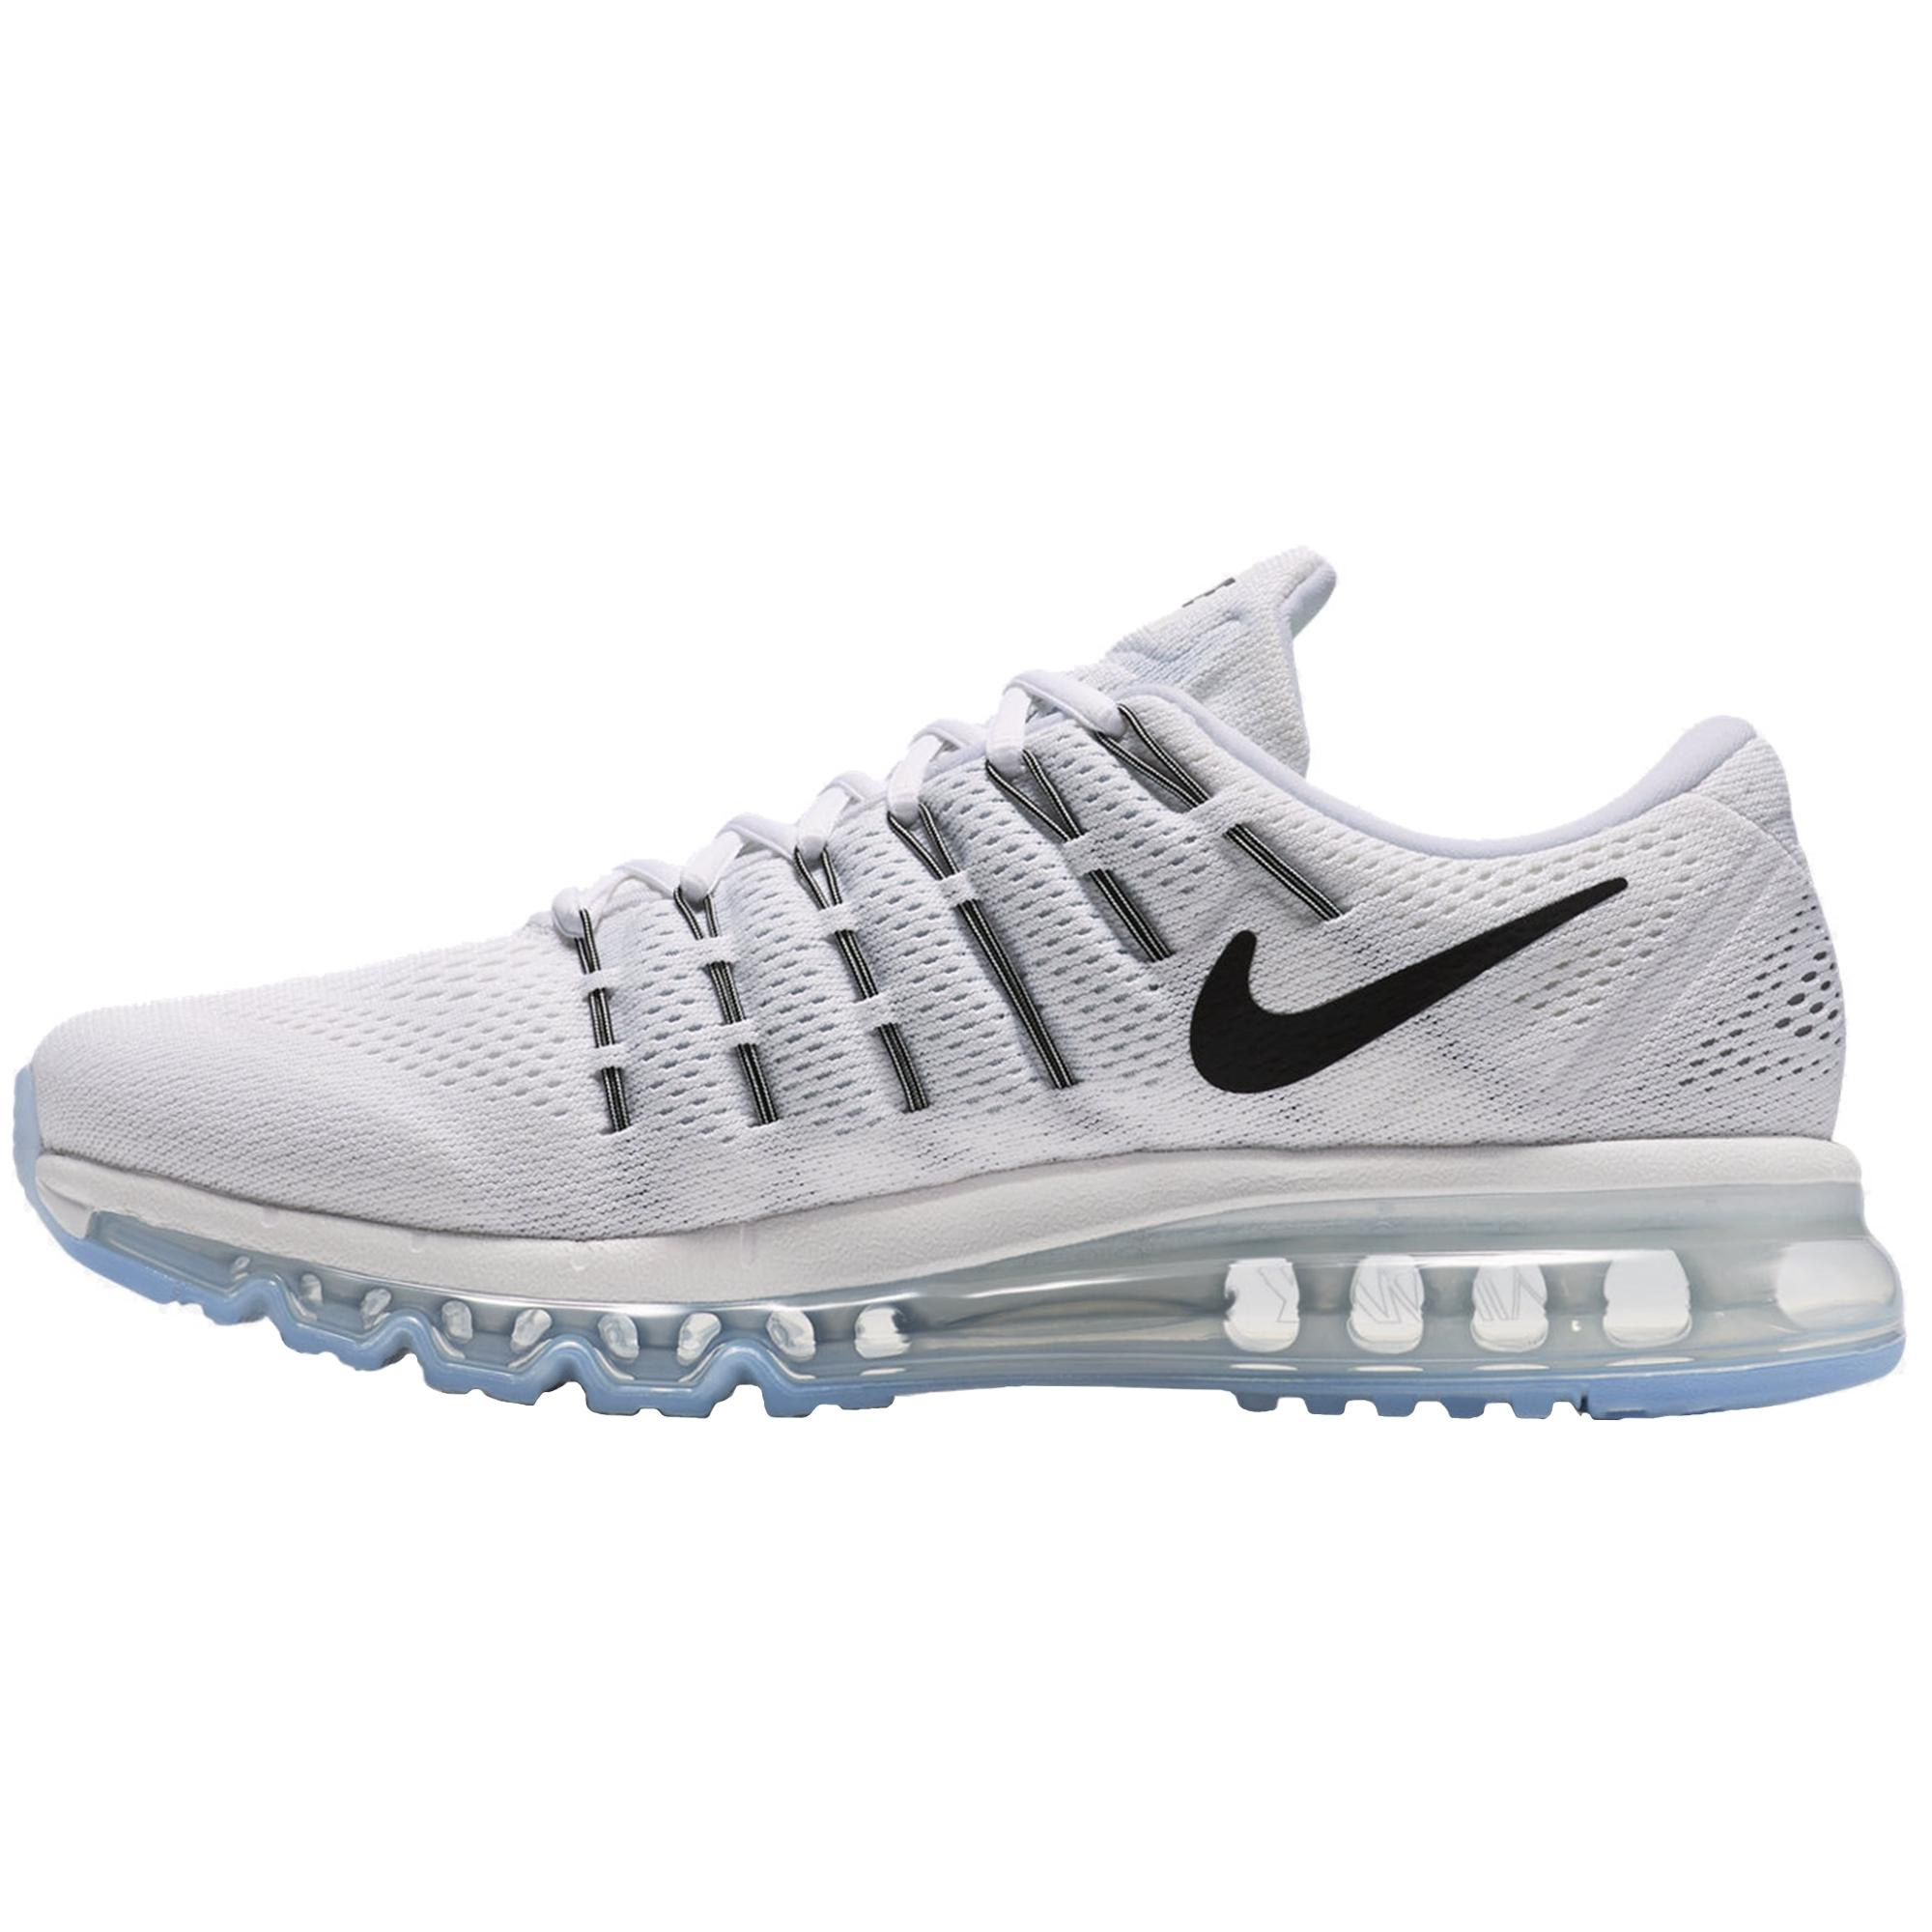 cheap wholesale china nike air max 90 shoes,china wholesale nike